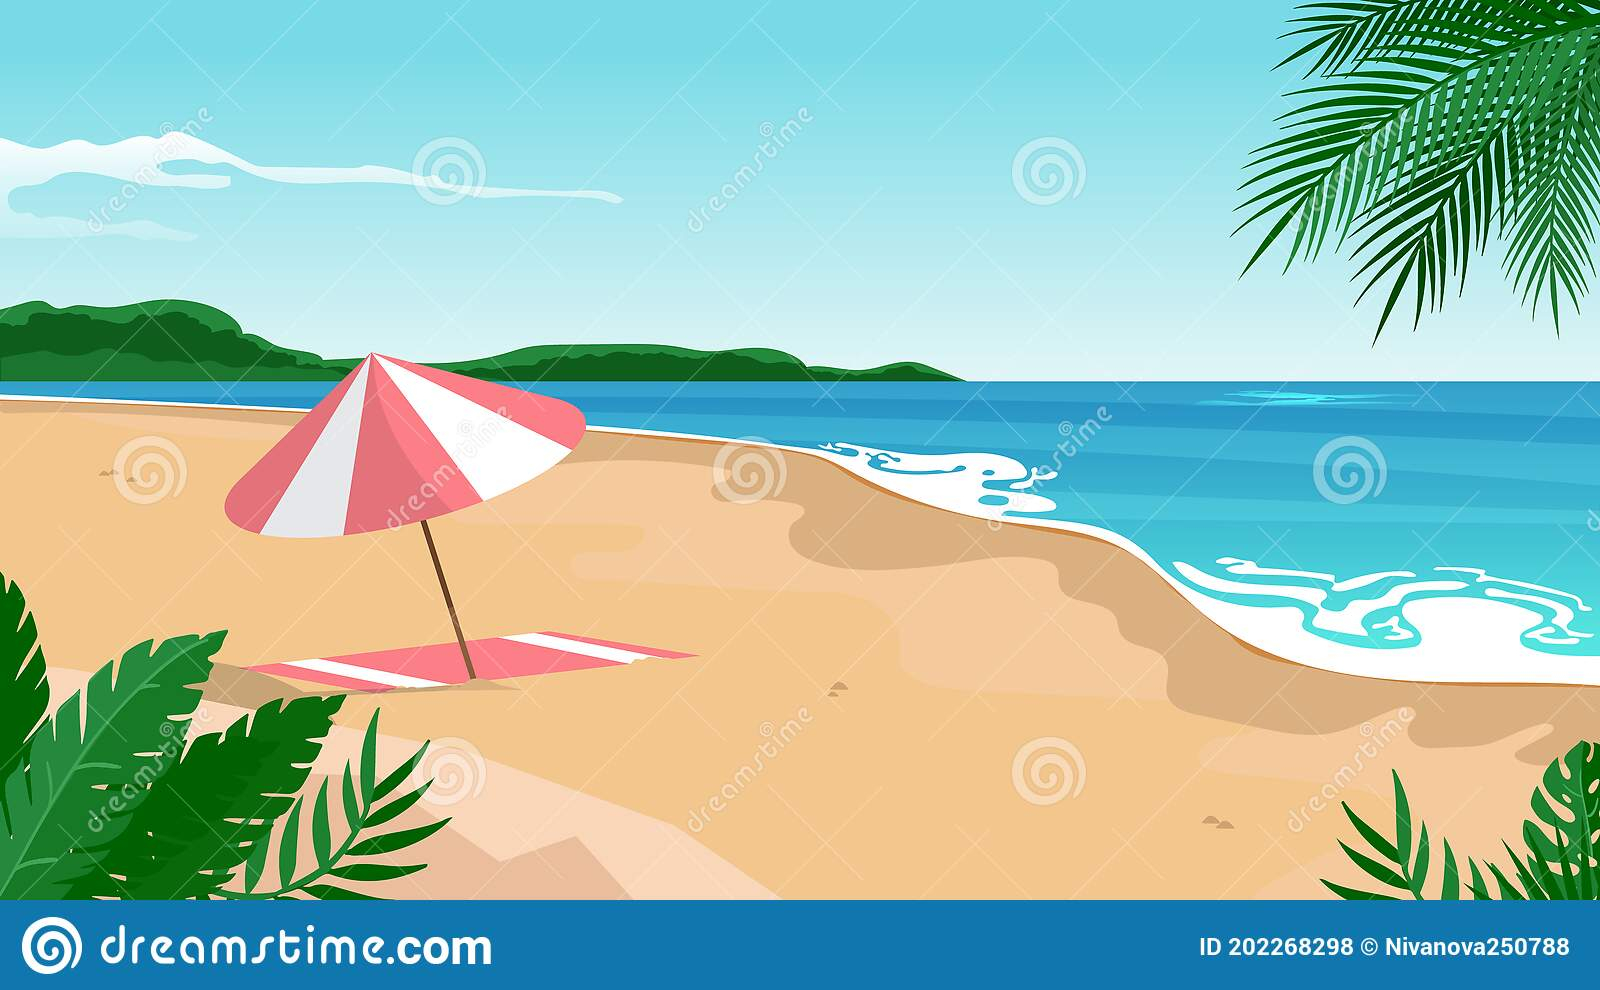 summer landscape background zoom vector illustration